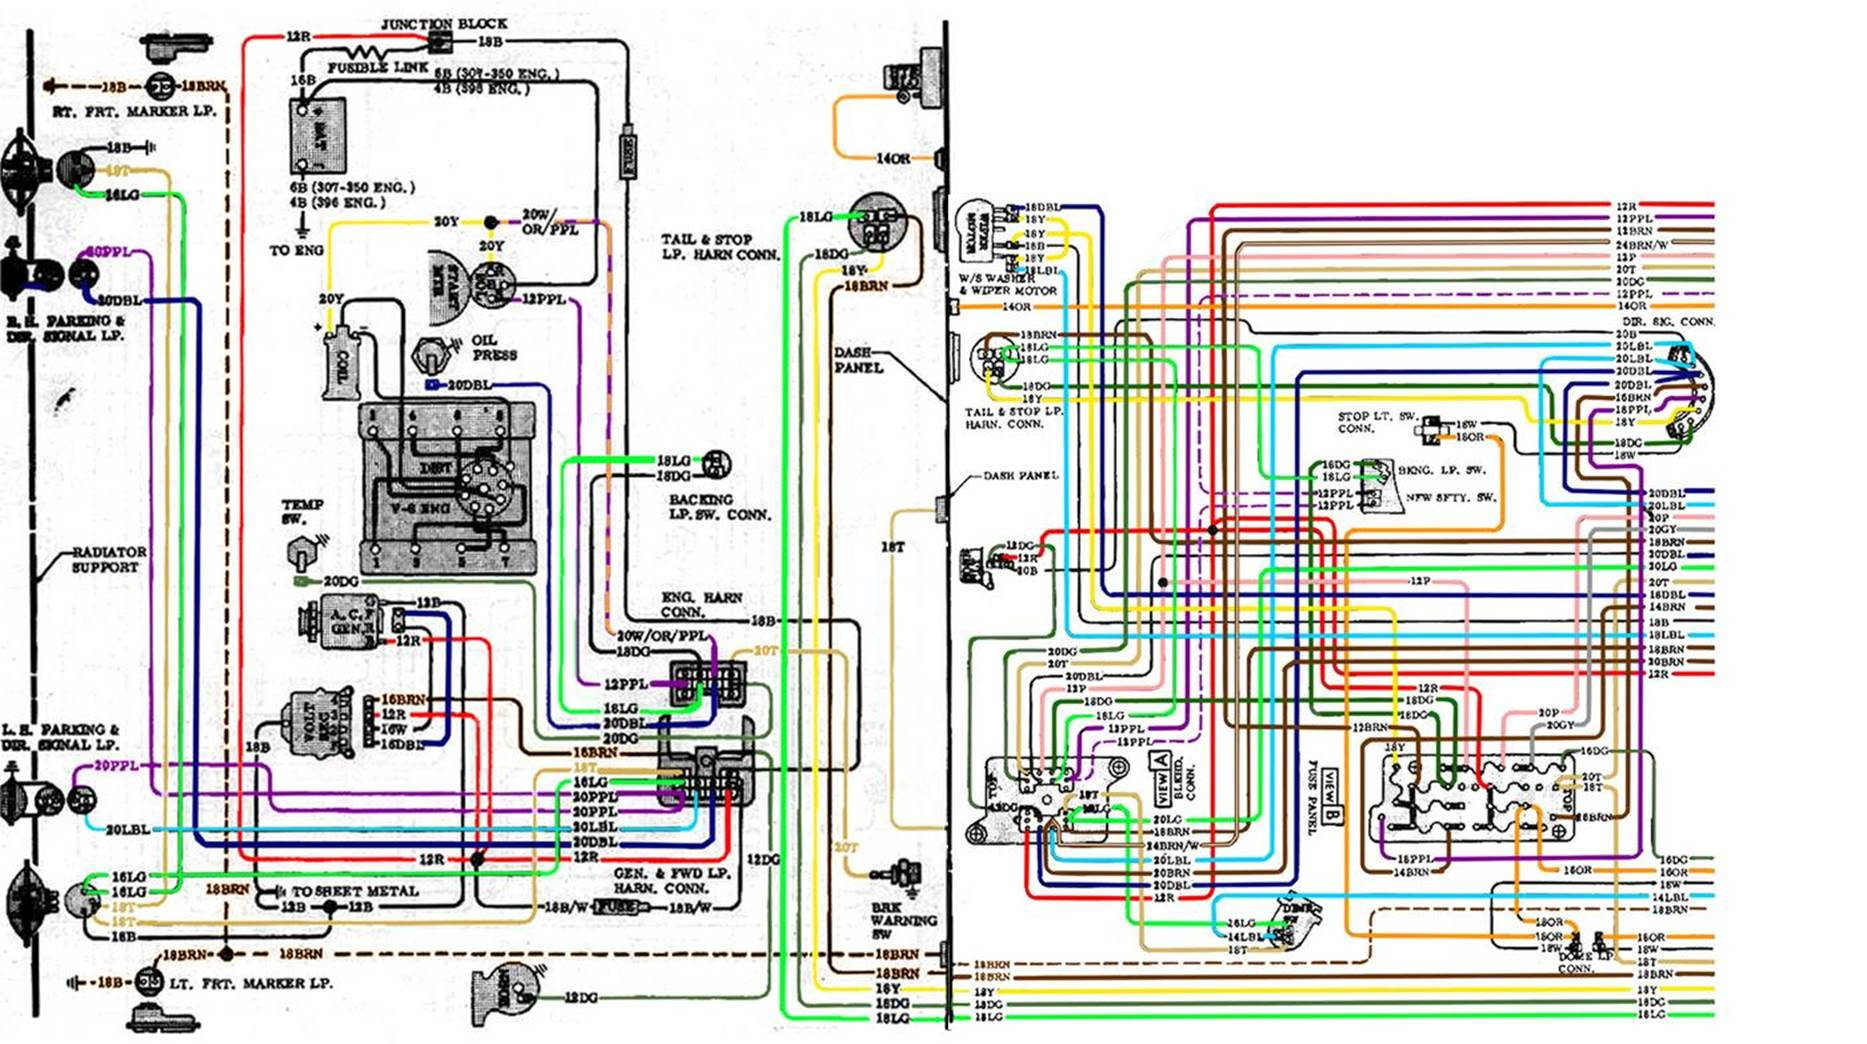 1972 Chevelle Engine Wiring Diagram: 67-72 Chevy Wiring Diagram,Design